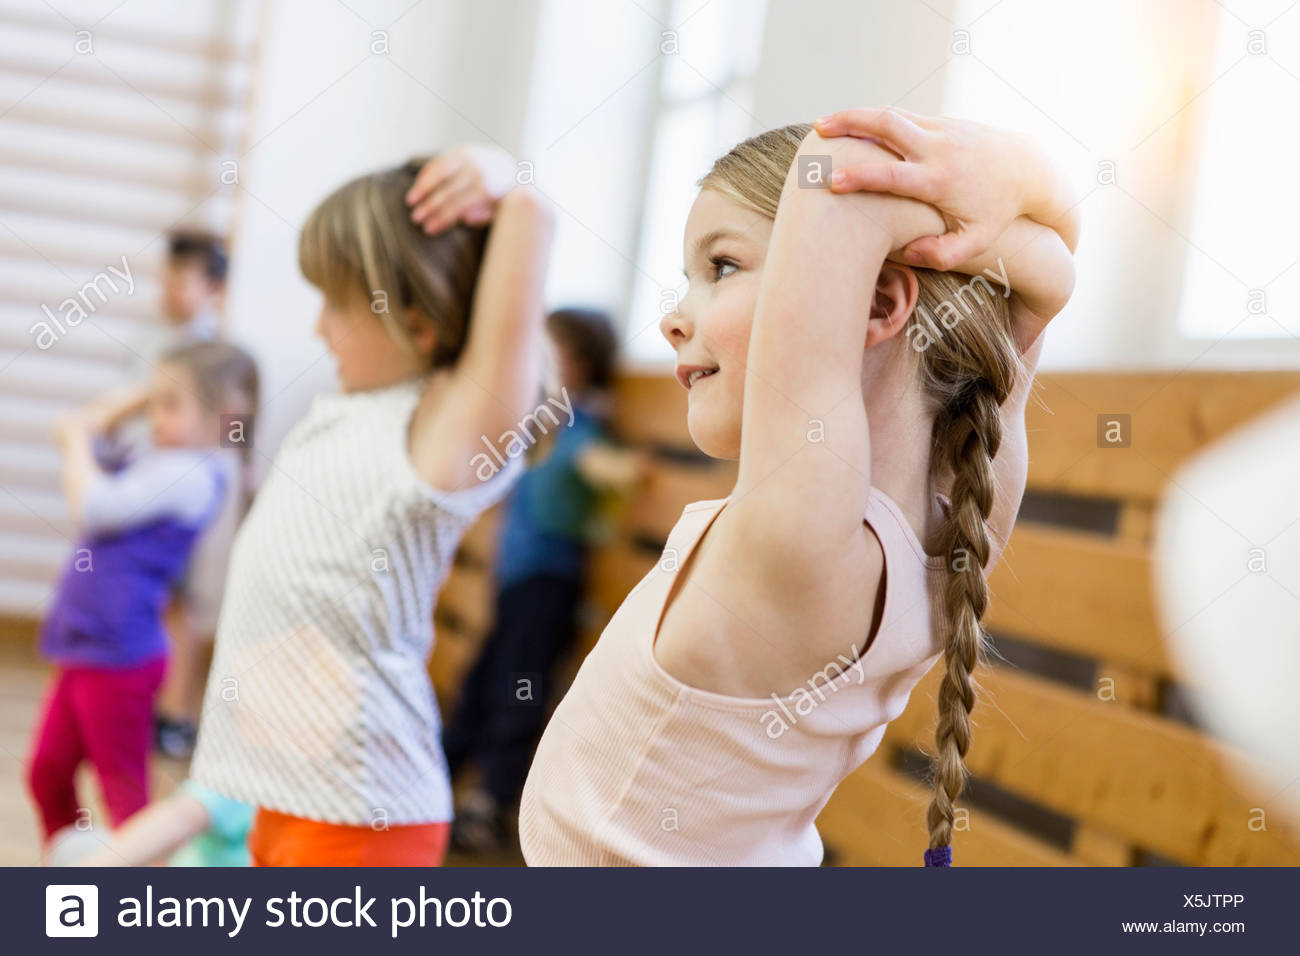 Girls stretching with arms together above heads - Stock Image